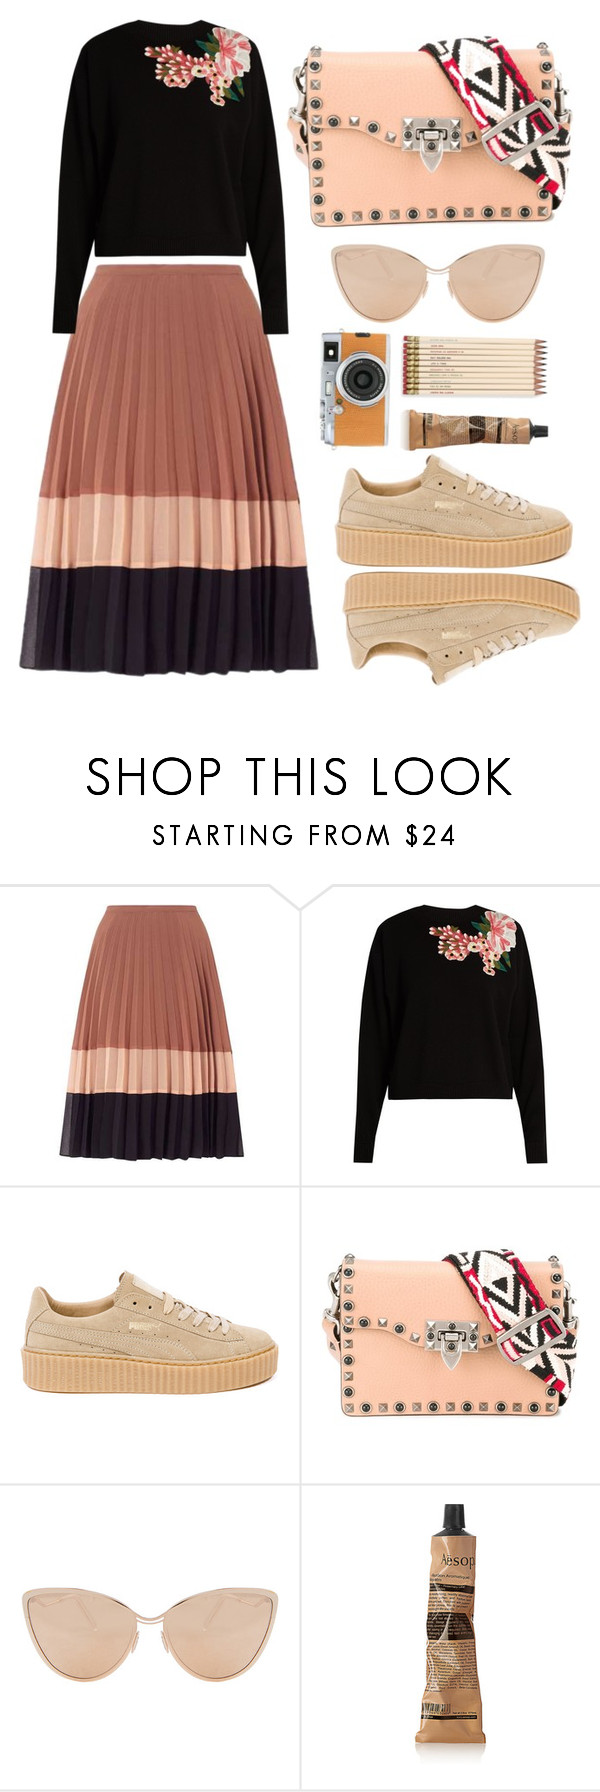 """""""street style"""" by agatka-lewek ❤ liked on Polyvore featuring Miss Selfridge, Dolce&Gabbana, Puma, Valentino, Cutler and Gross, Aesop, Kate Spade and Fujifilm"""